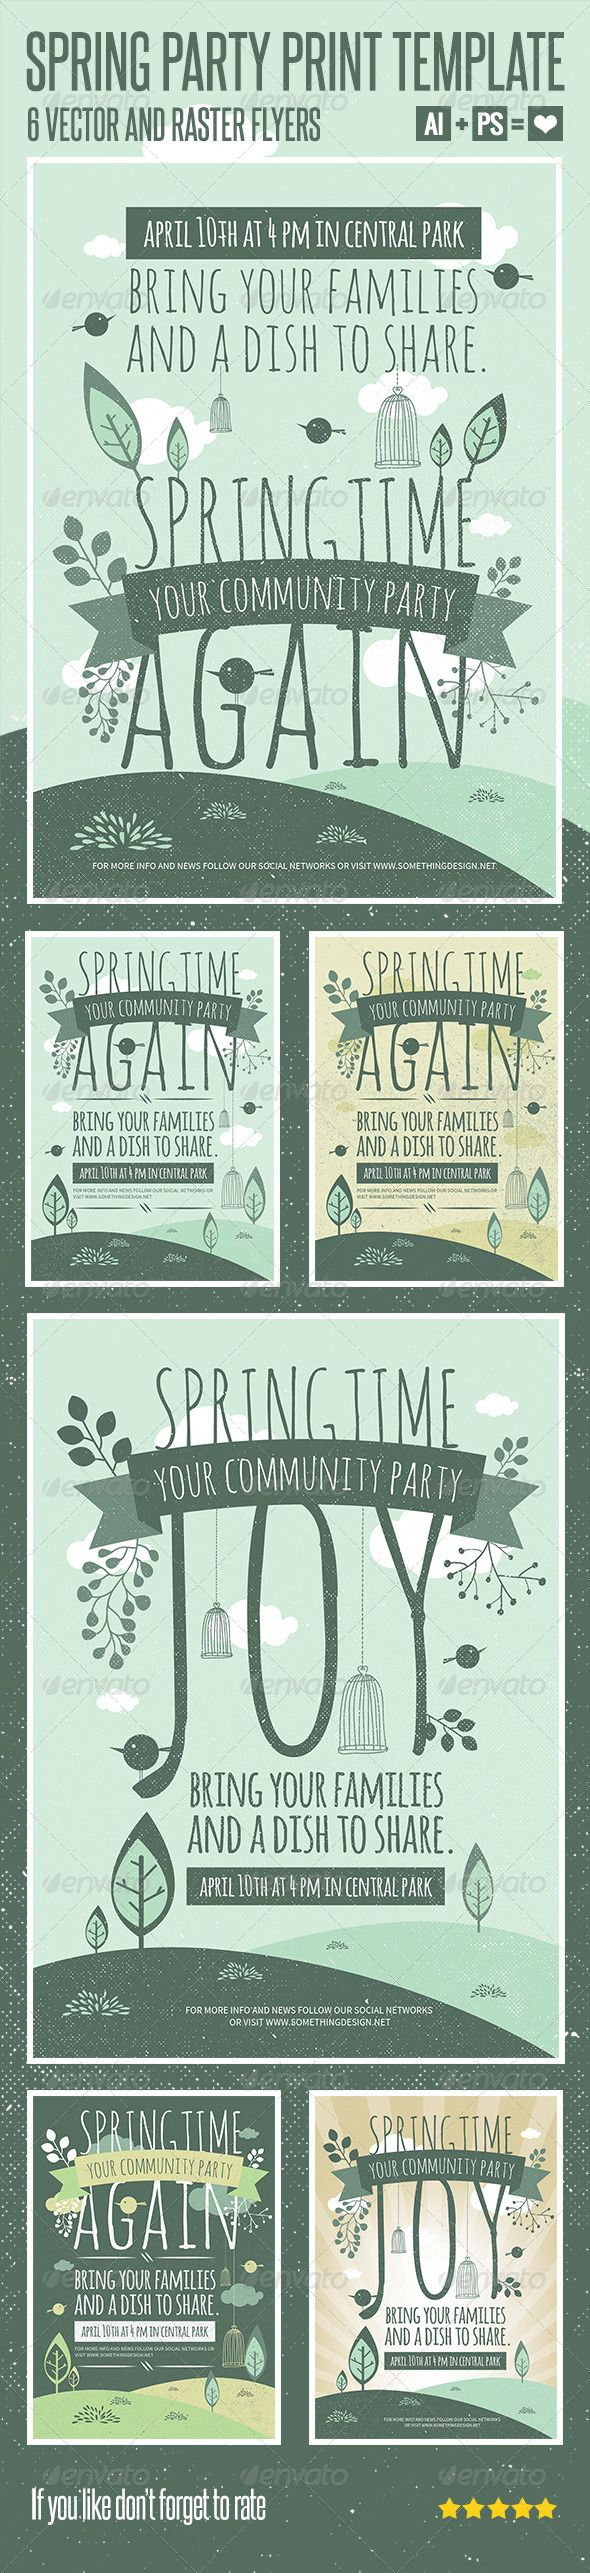 invitation wording for networking event%0A Spring Party Print Template  Poster Adobe Illustrator file CS   in this  files all elements are